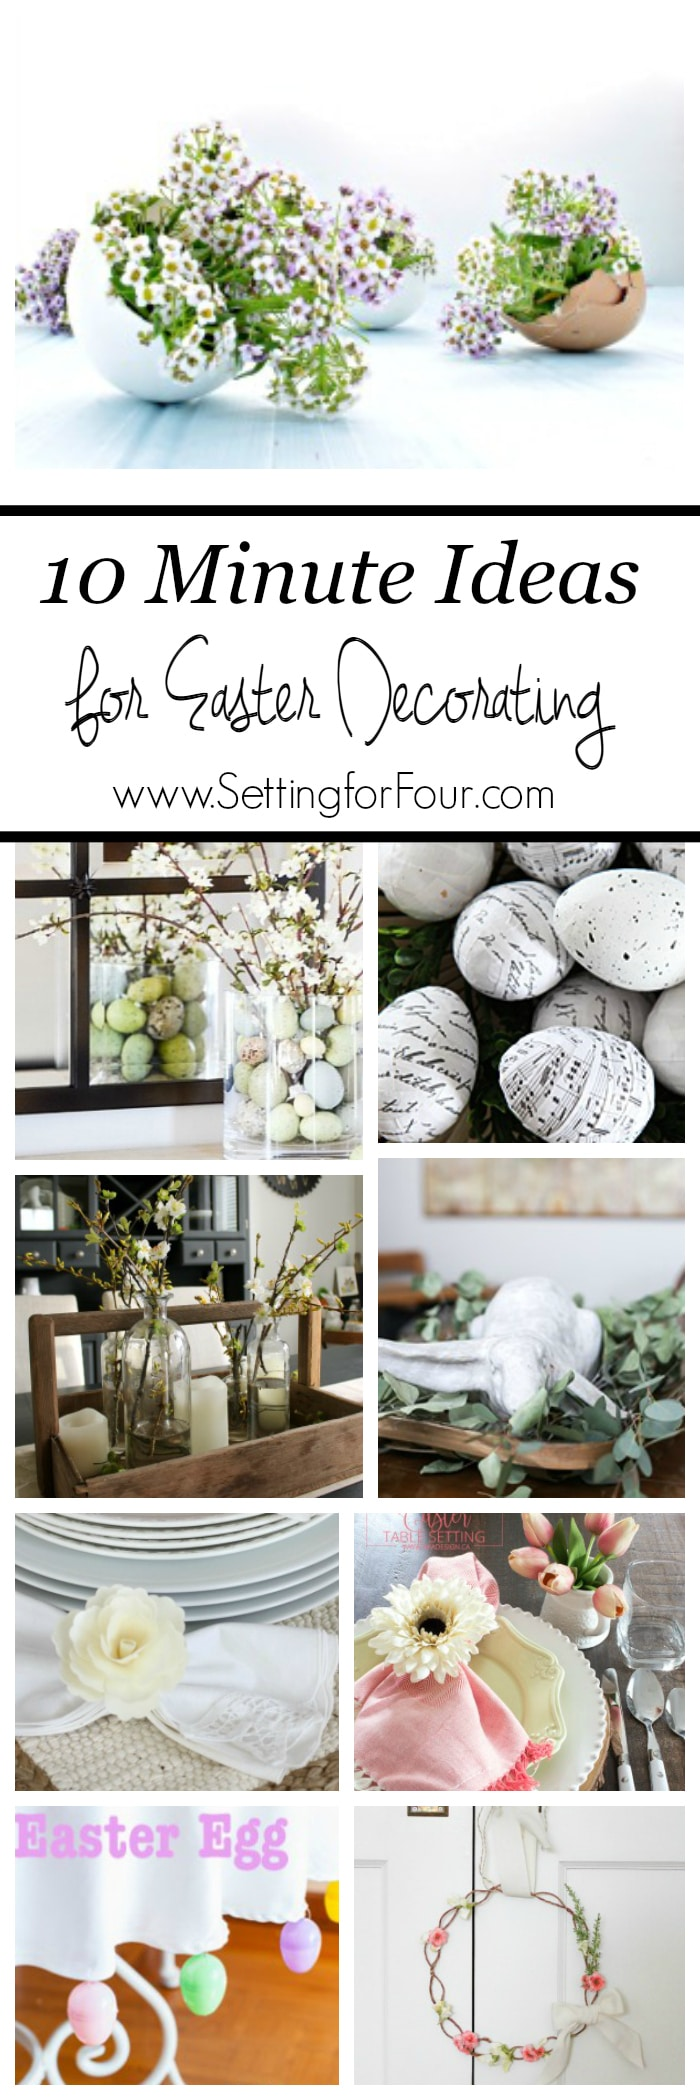 Easter decorating ideas with easter eggs setting for four for Decor quick